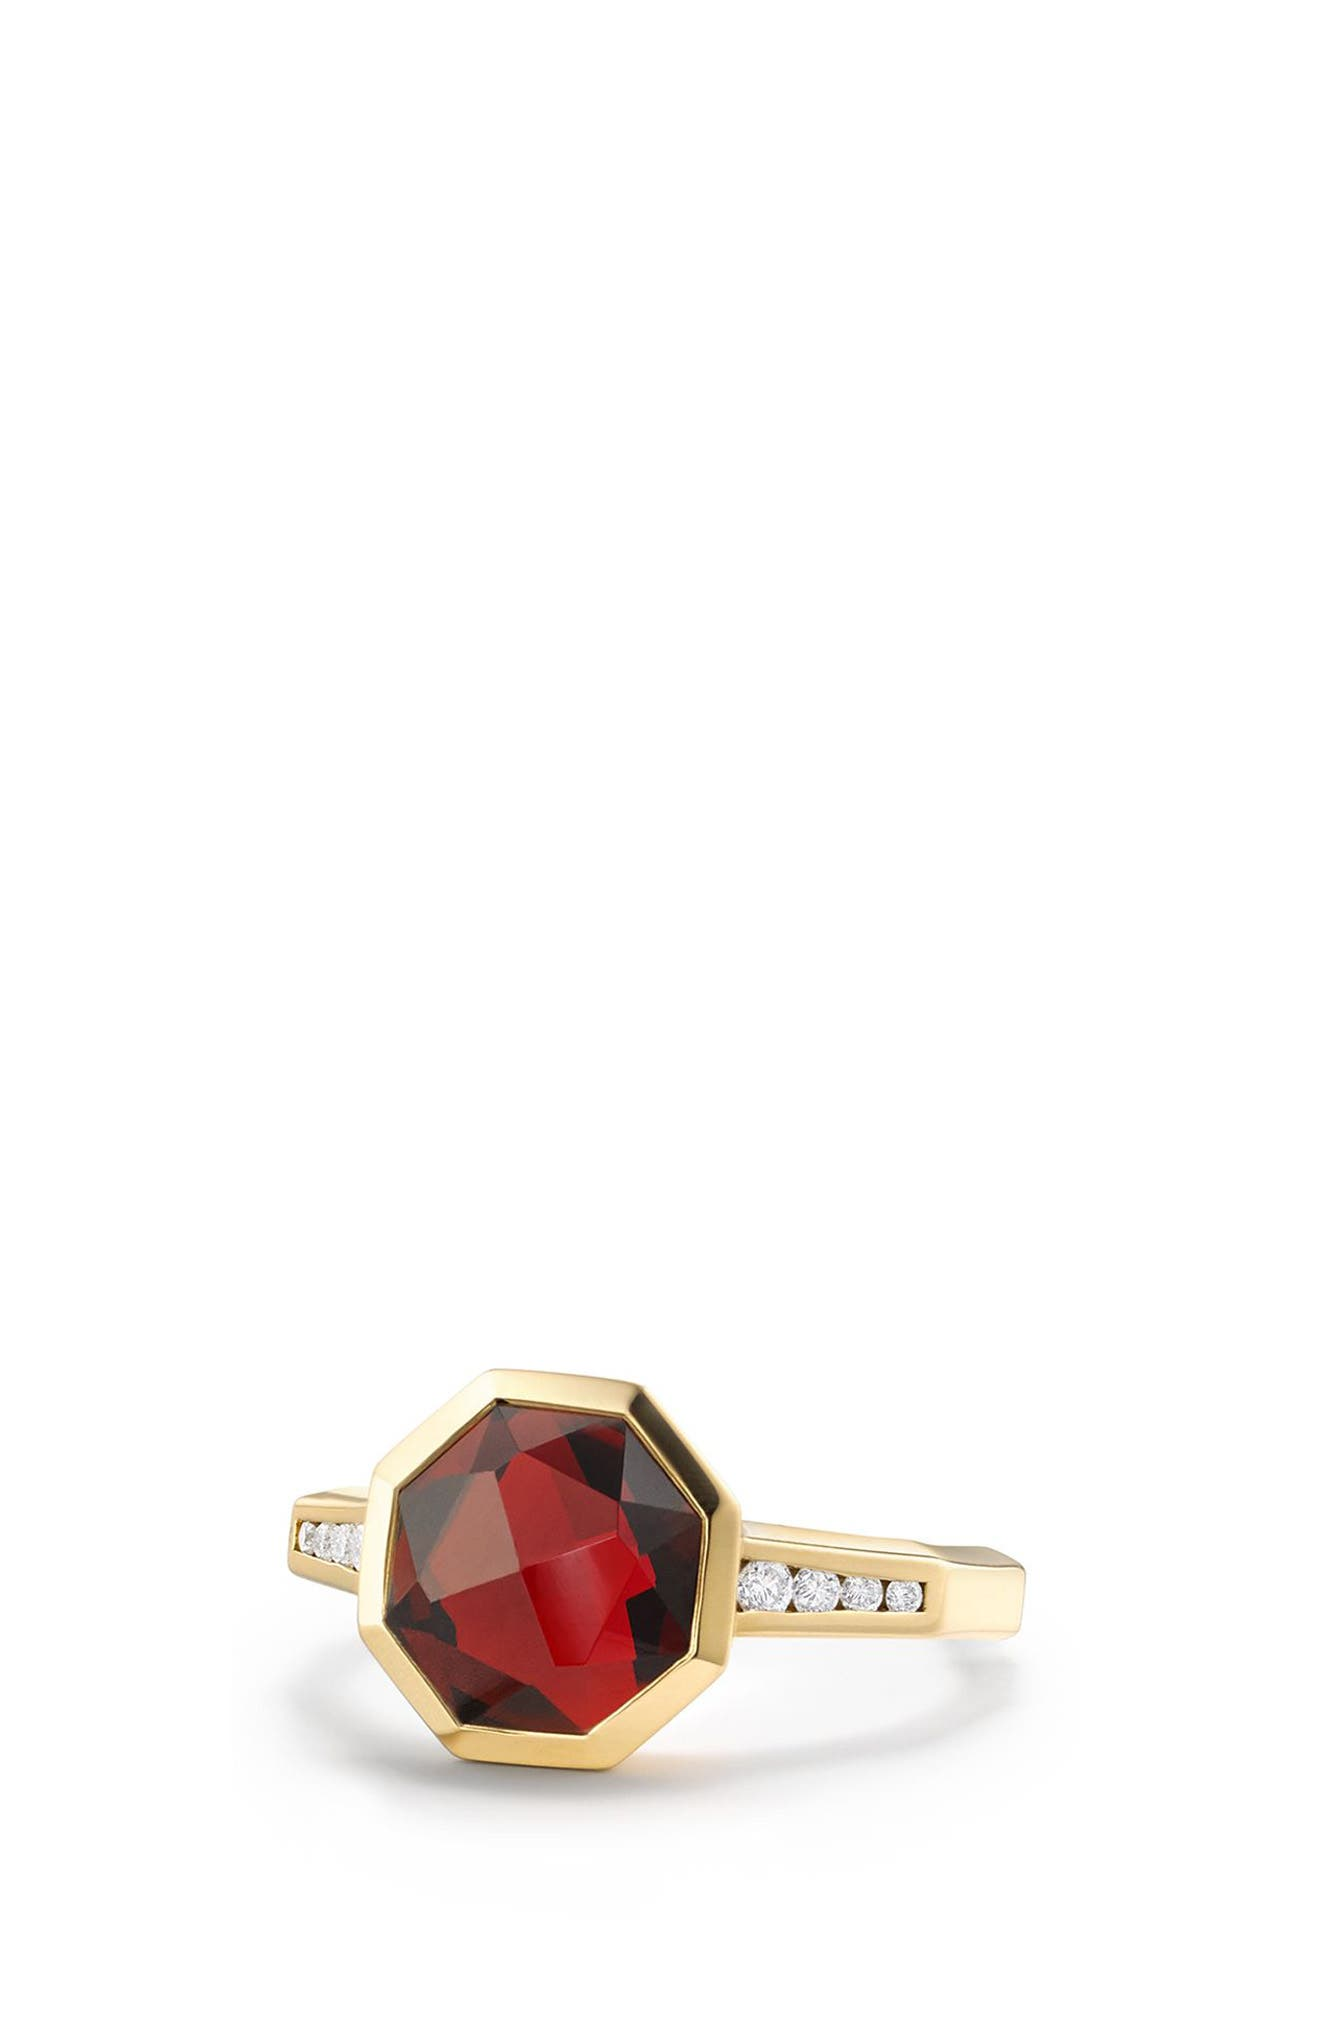 Guilin Octagon Ring with Diamonds in 18K Gold,                             Main thumbnail 1, color,                             YELLOW GOLD/ DIAMOND